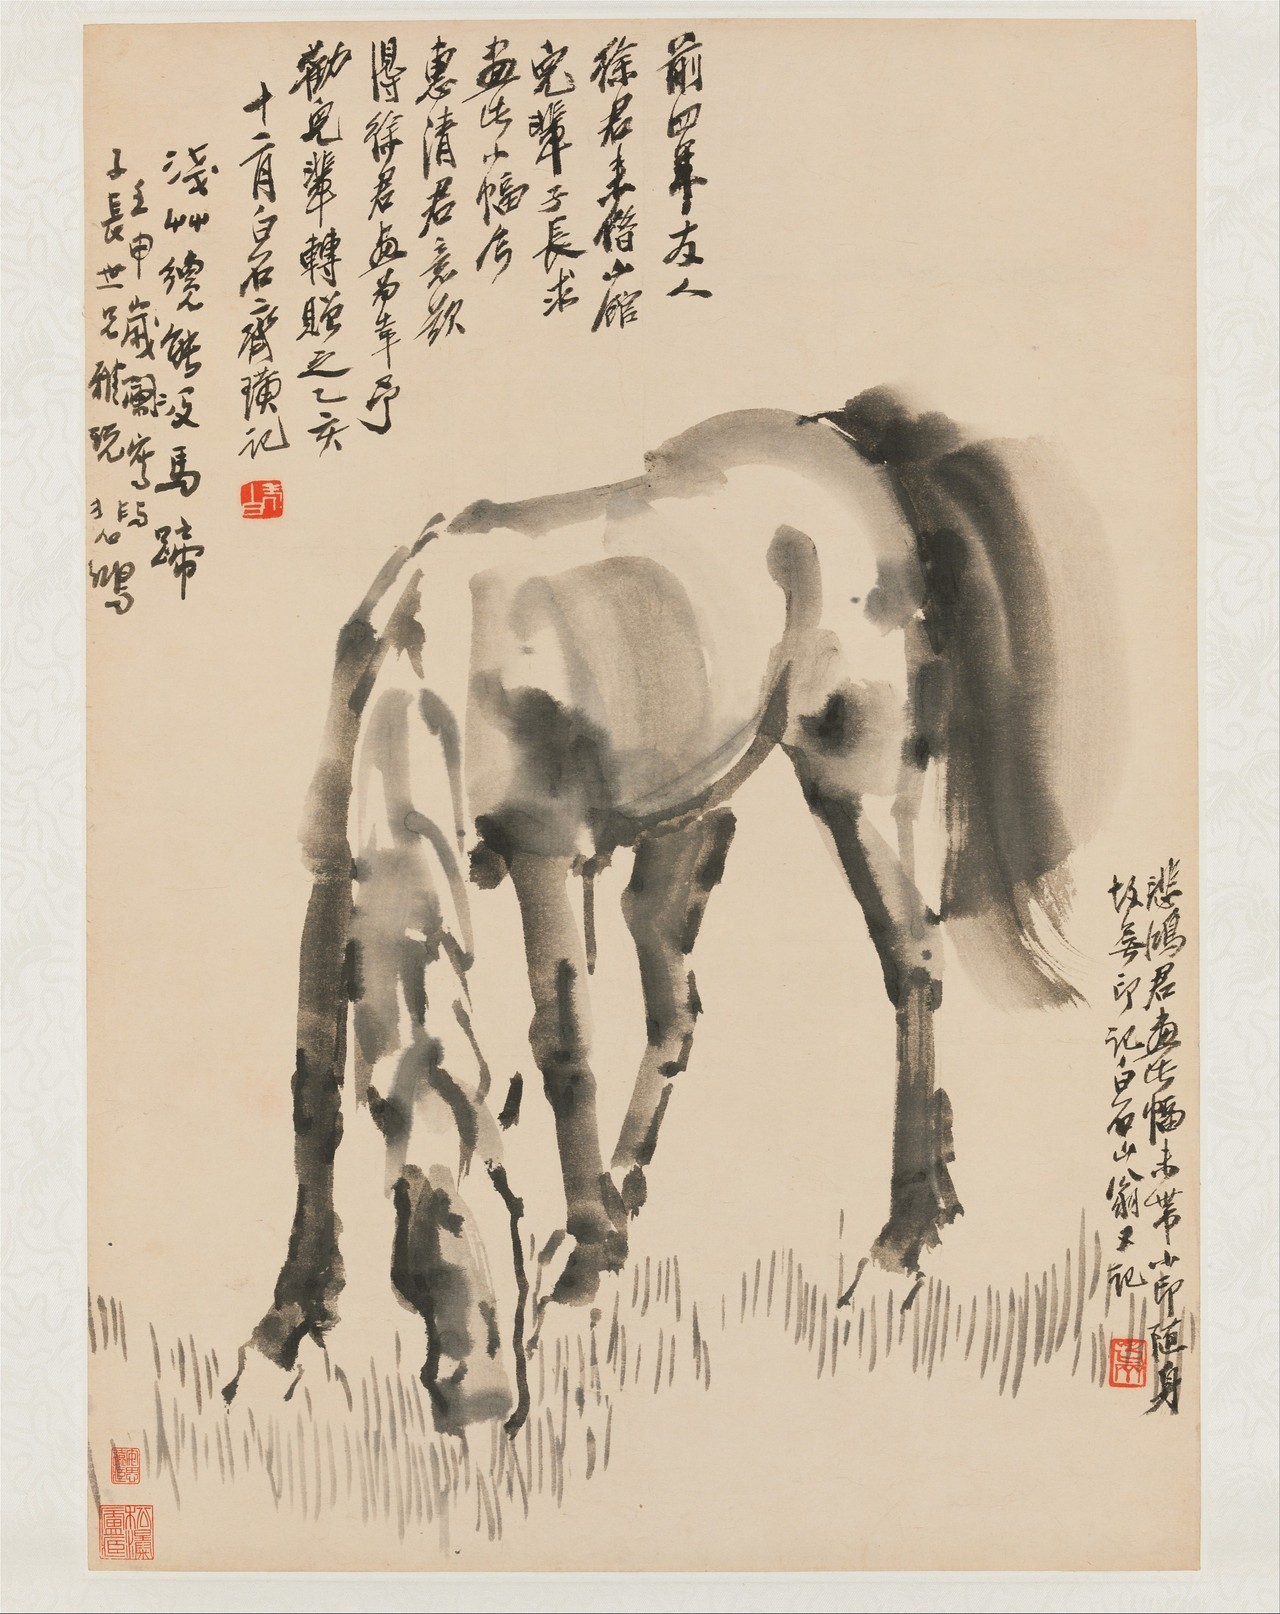 Xu Beihong - Grazing Horse, 1932. Hanging scroll: Ink on bark paper